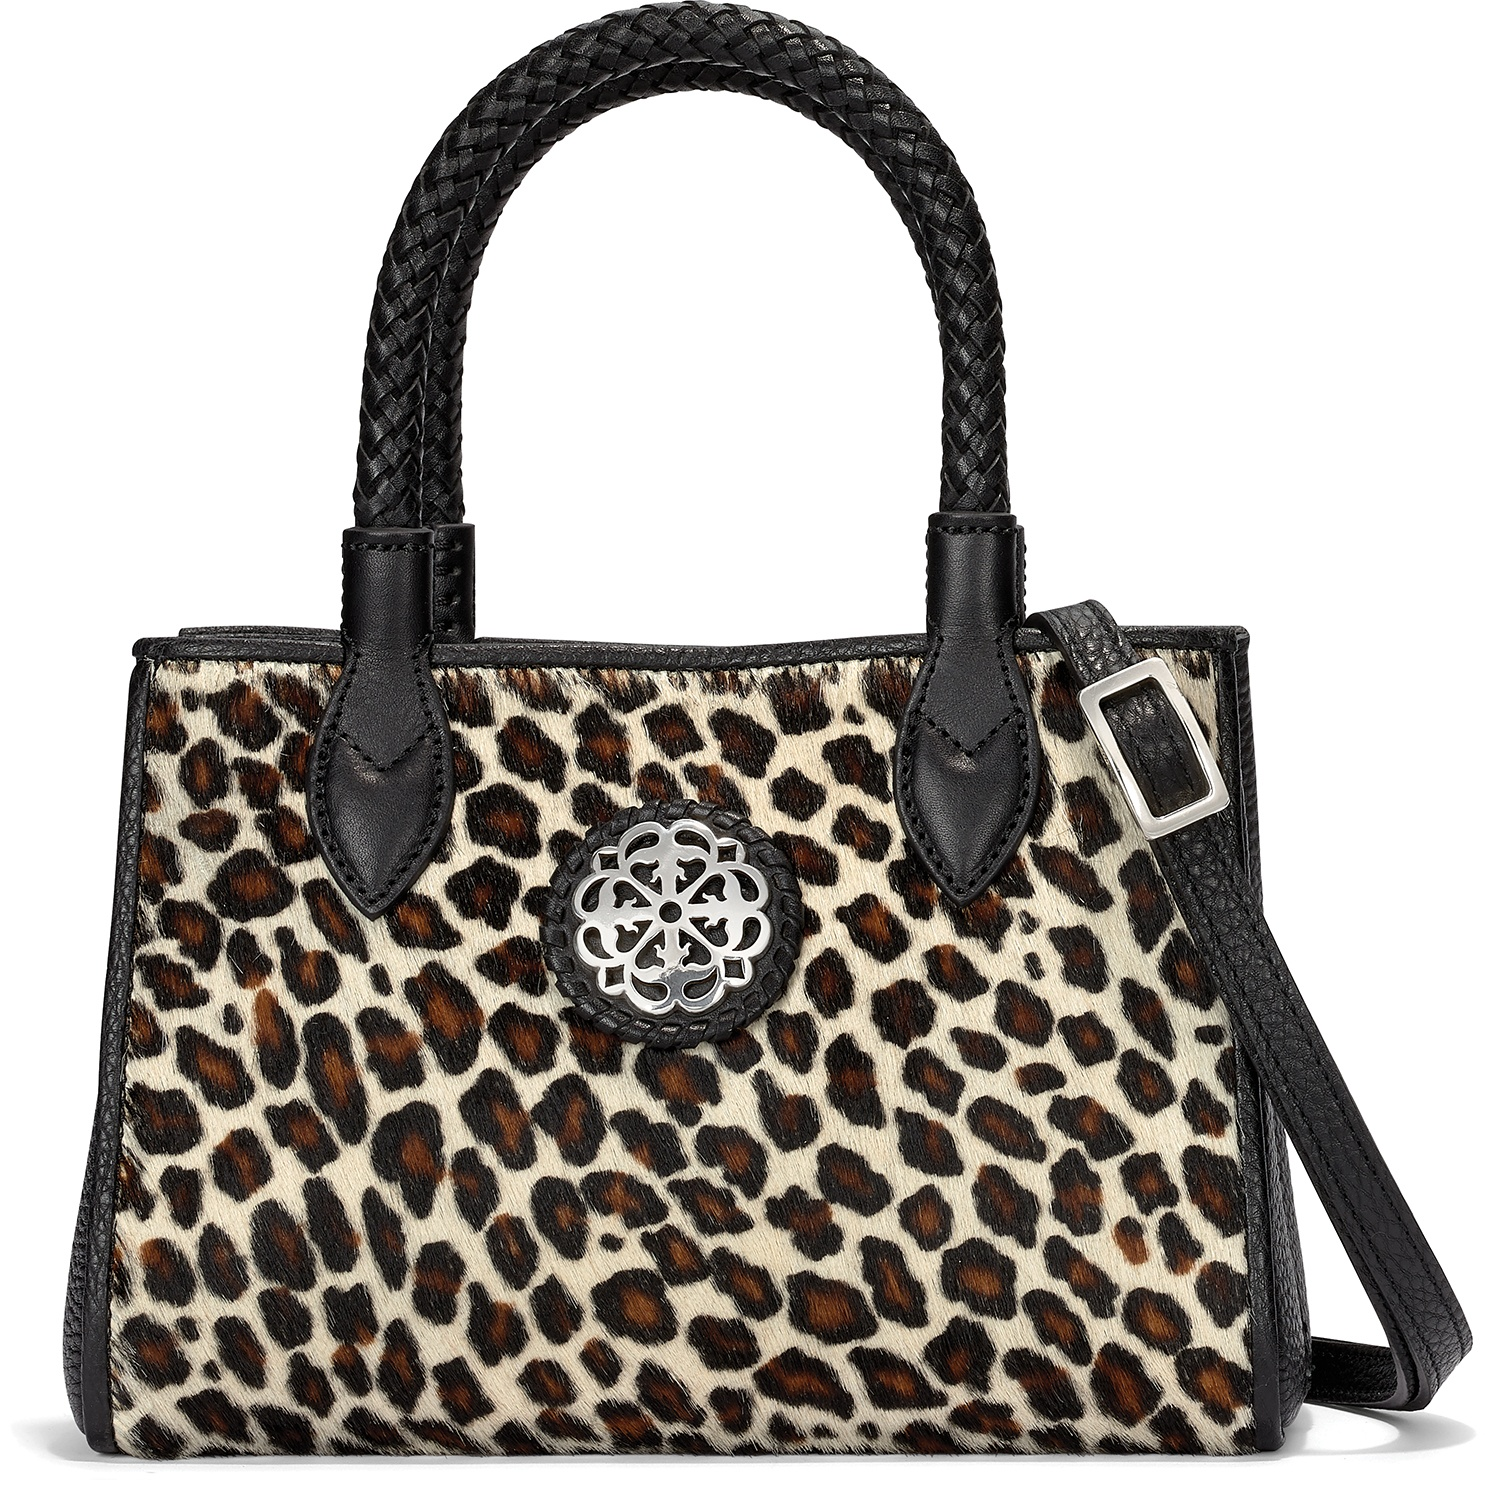 4f244aefbd7a Handbags - Brighton Designer Leather Handbags and Totes for Women